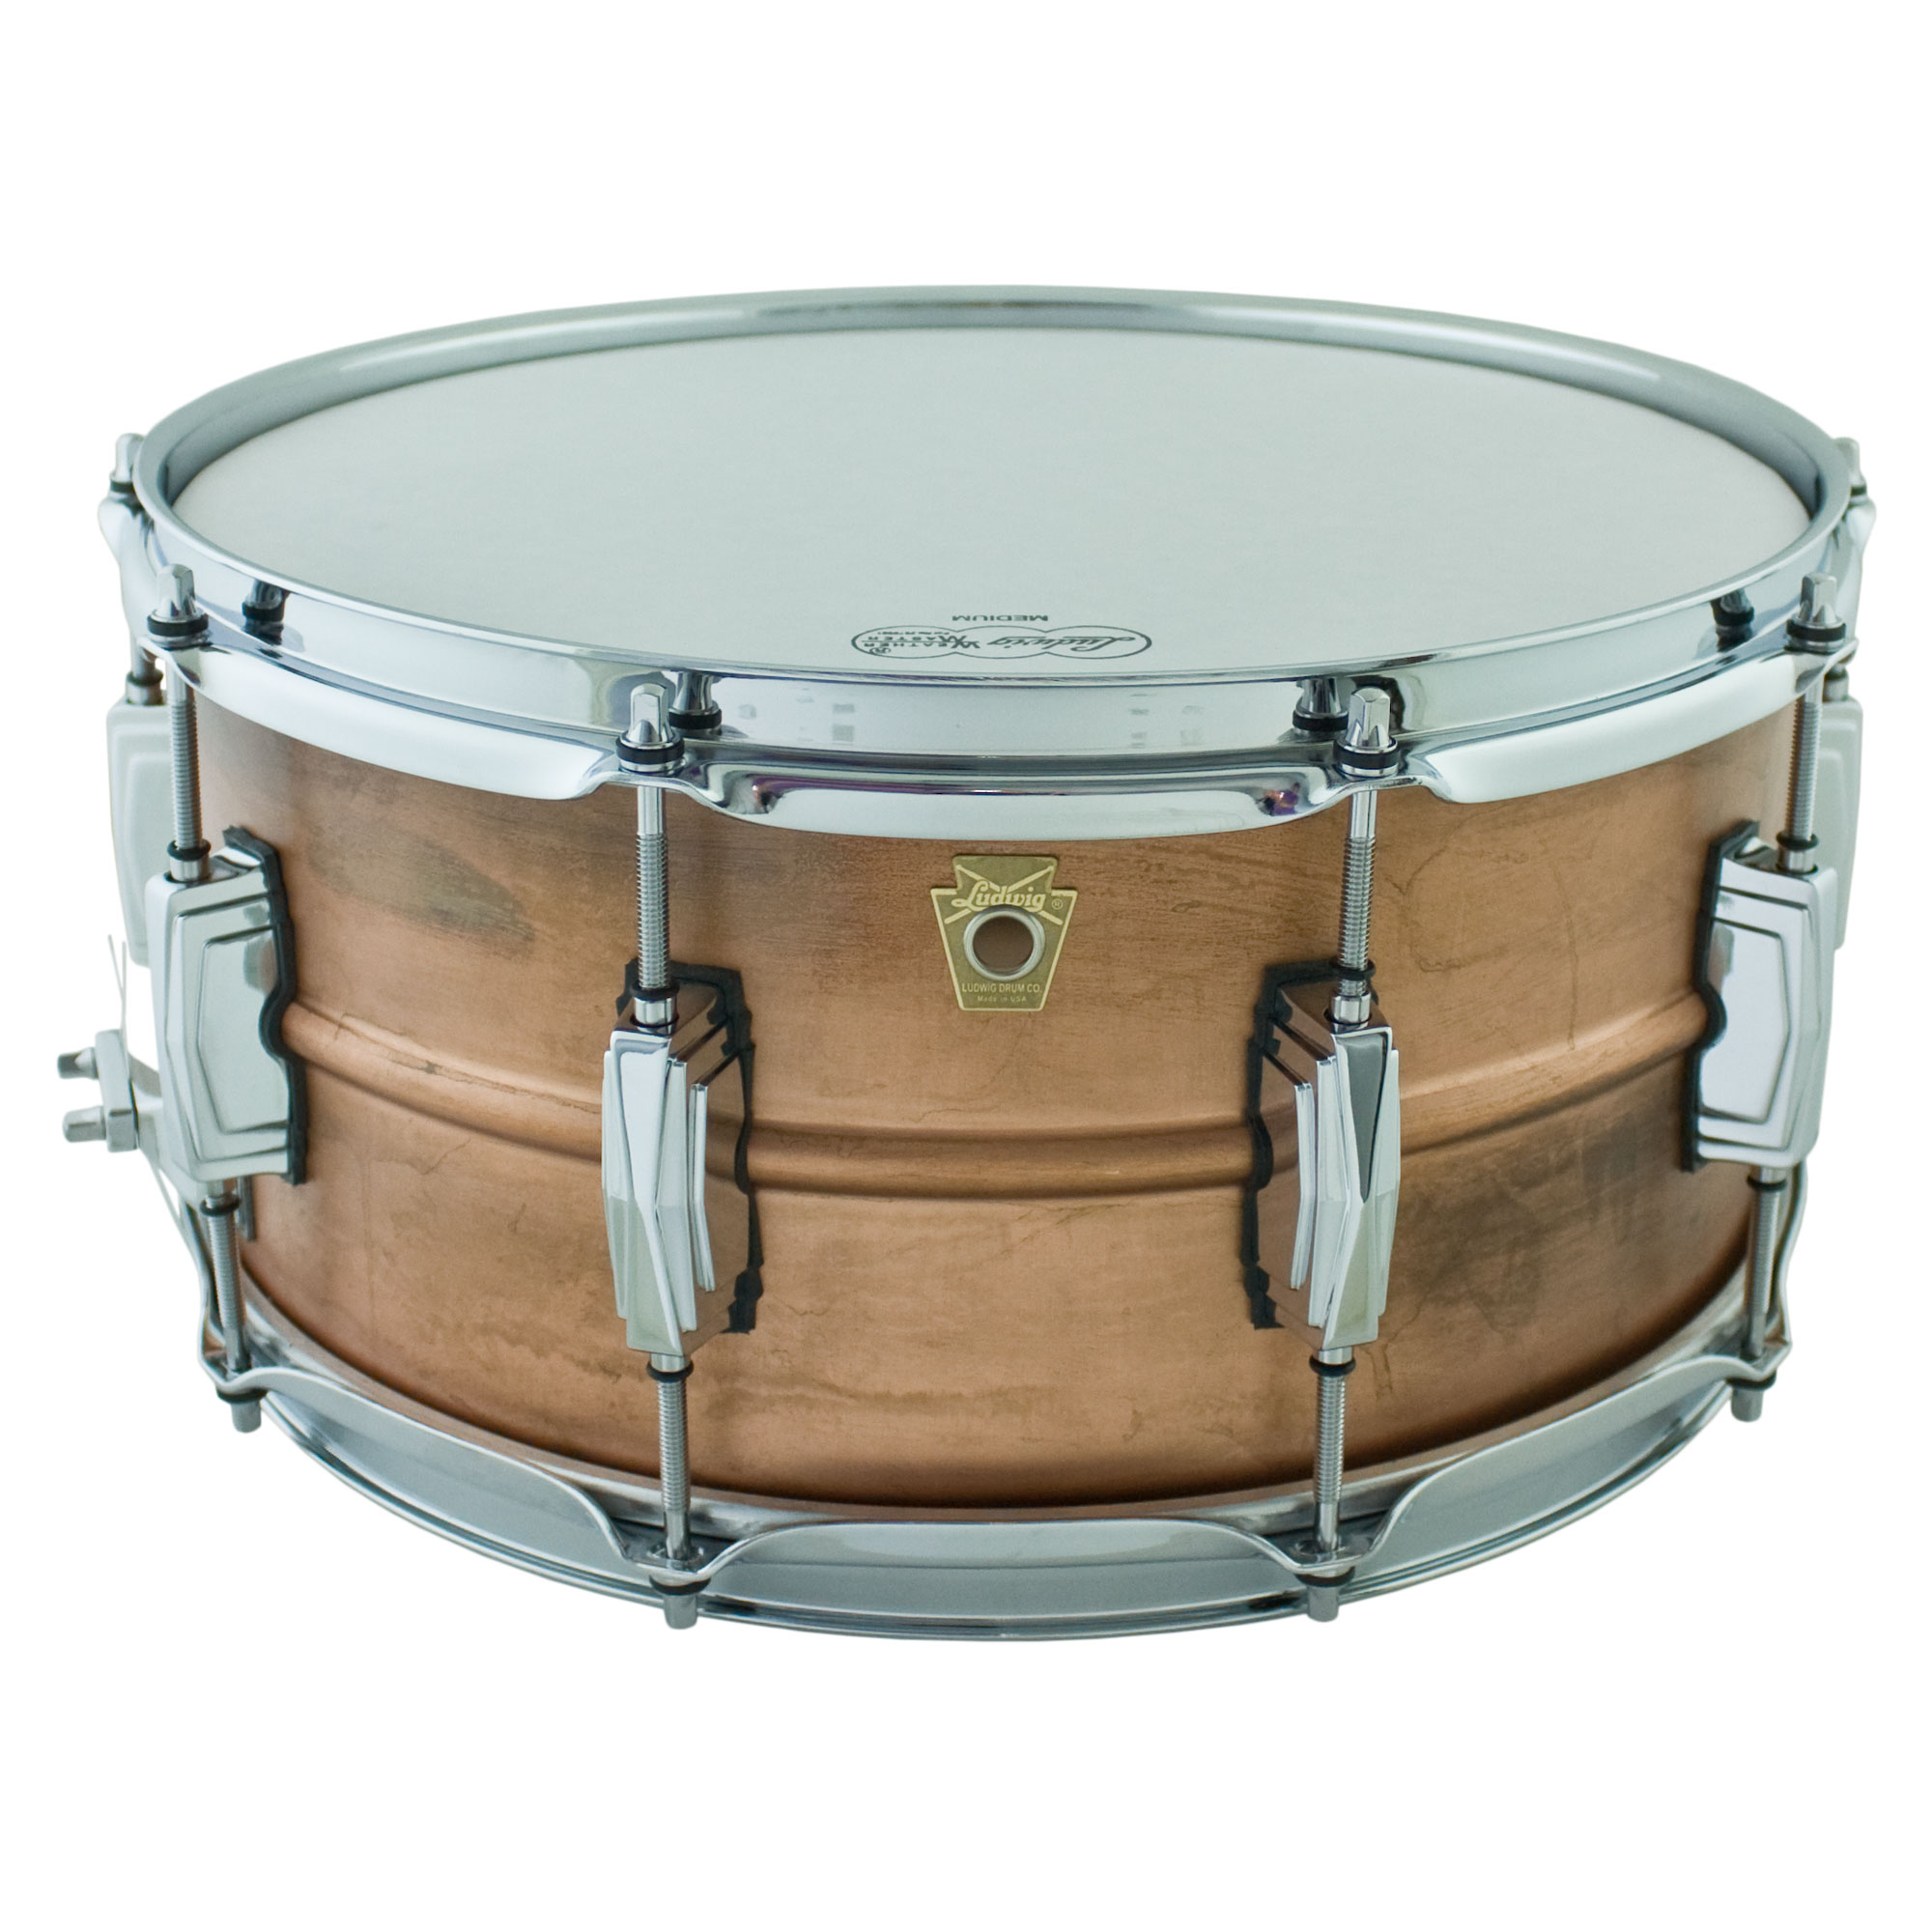 "Ludwig 6.5"" x 14"" Raw Copper Phonic Snare Drum with Imperial Lugs"